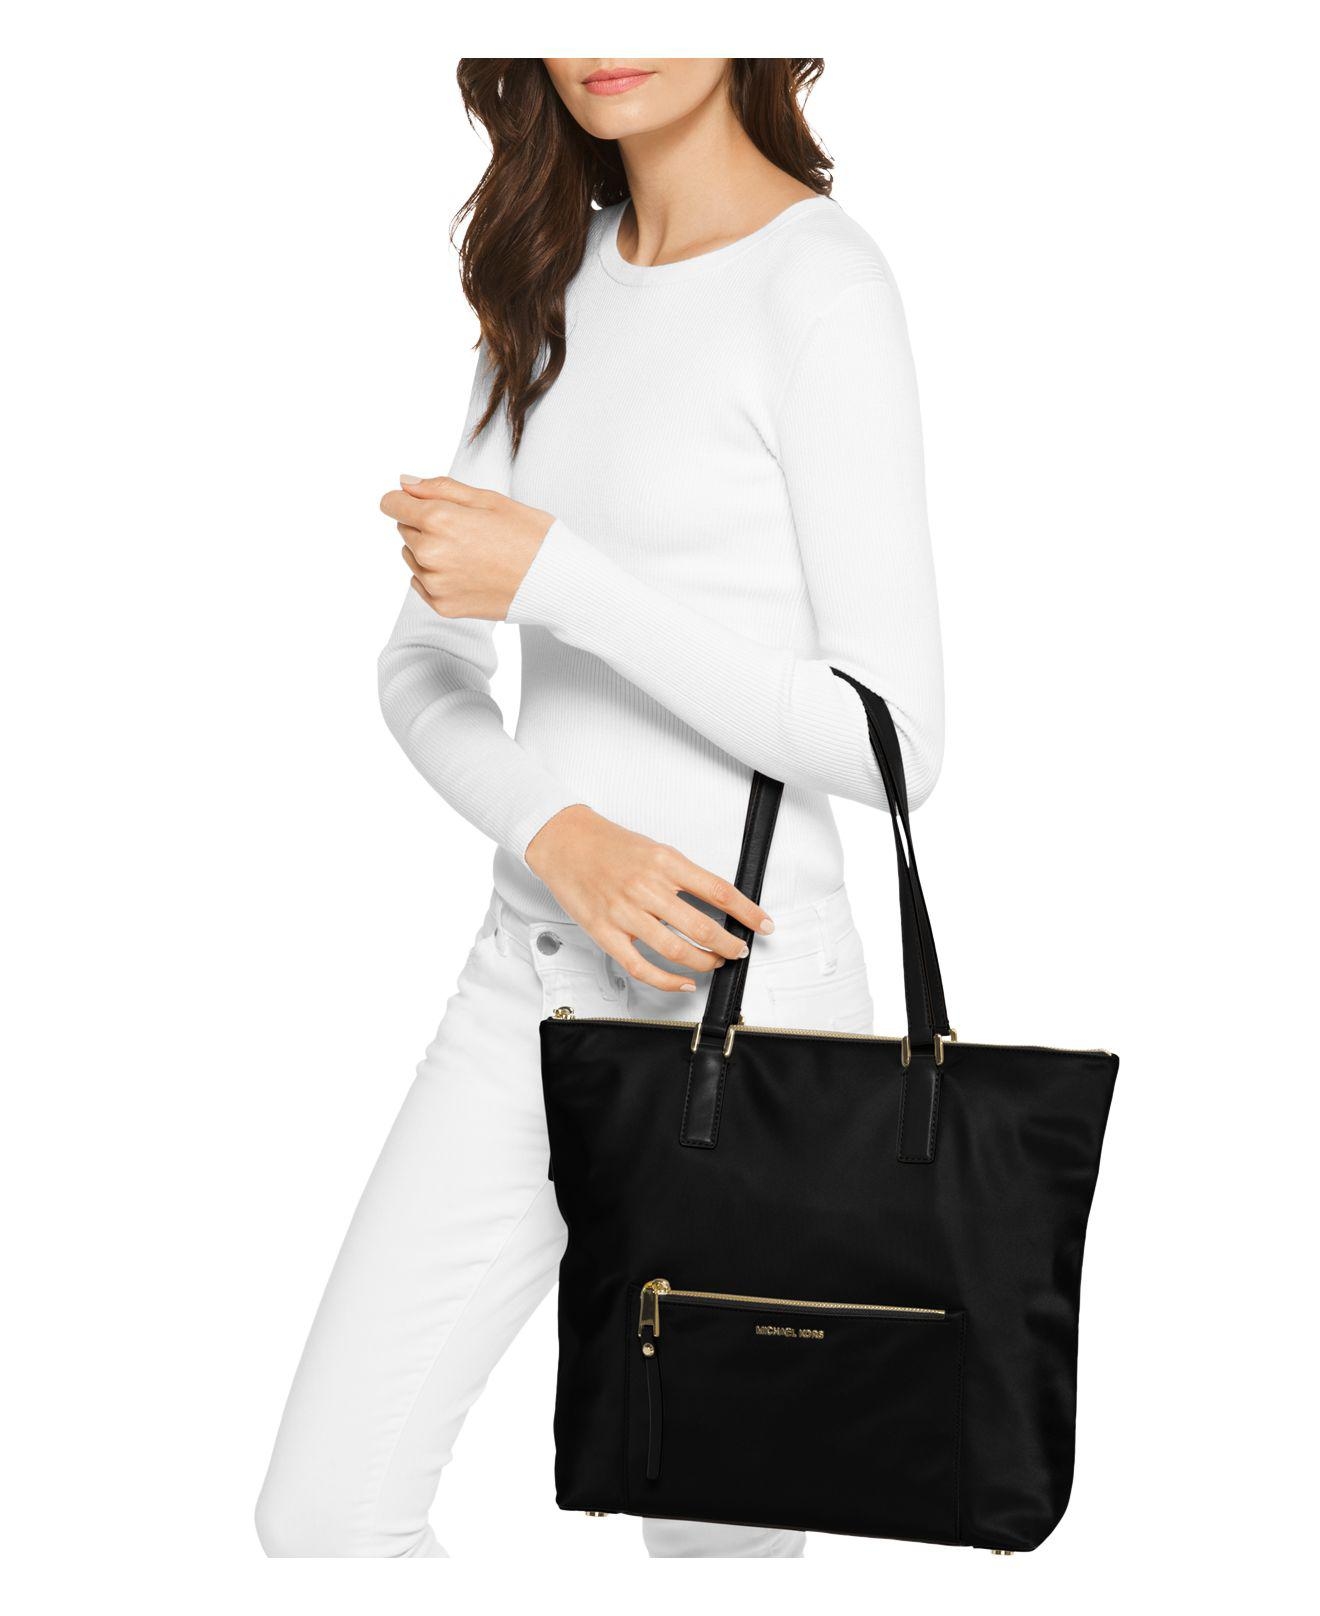 331e8916209224 Gallery. Previously sold at: Bloomingdale's · Women's Celine Edge Bag  Women's Michael Kors ...